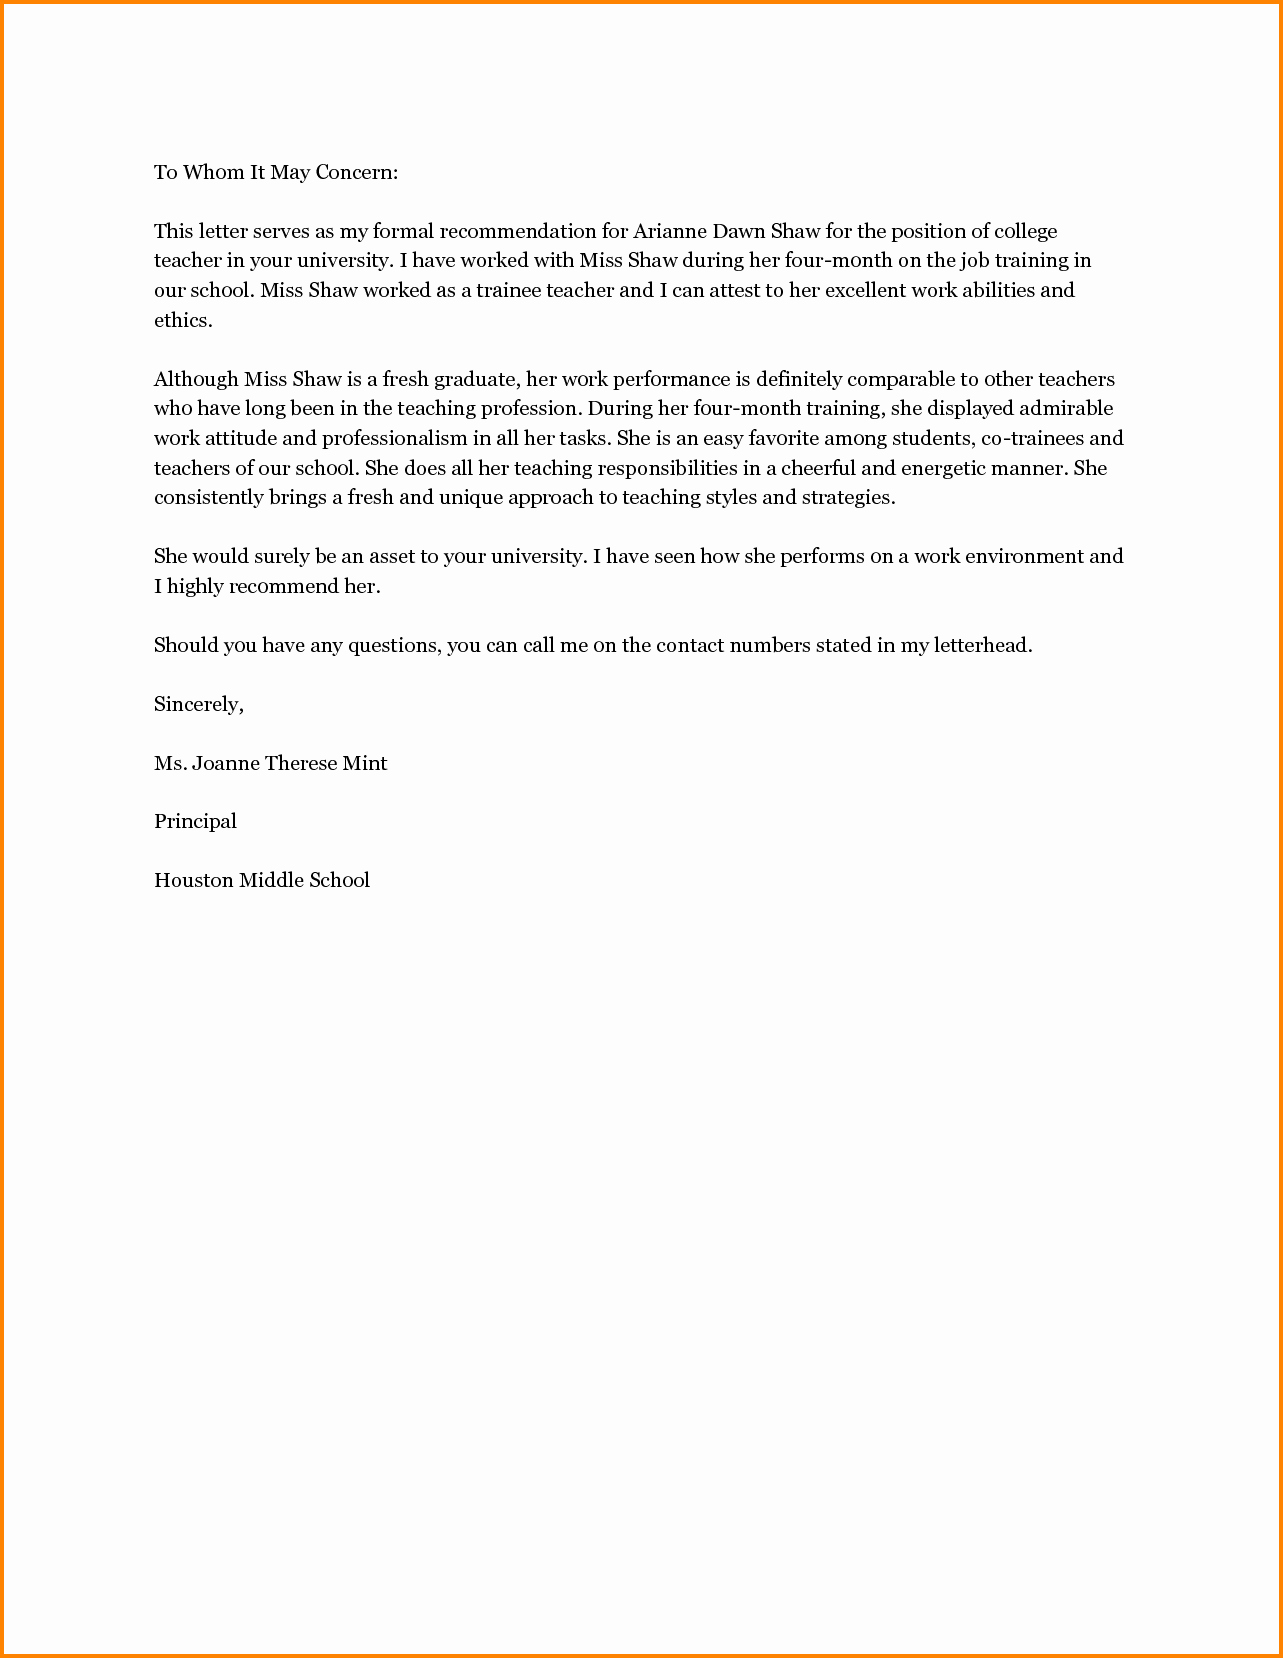 Scholarship Recommendation Letter From Teacher Beautiful 11 Re Mendation Letter for Scholarship From Teacher